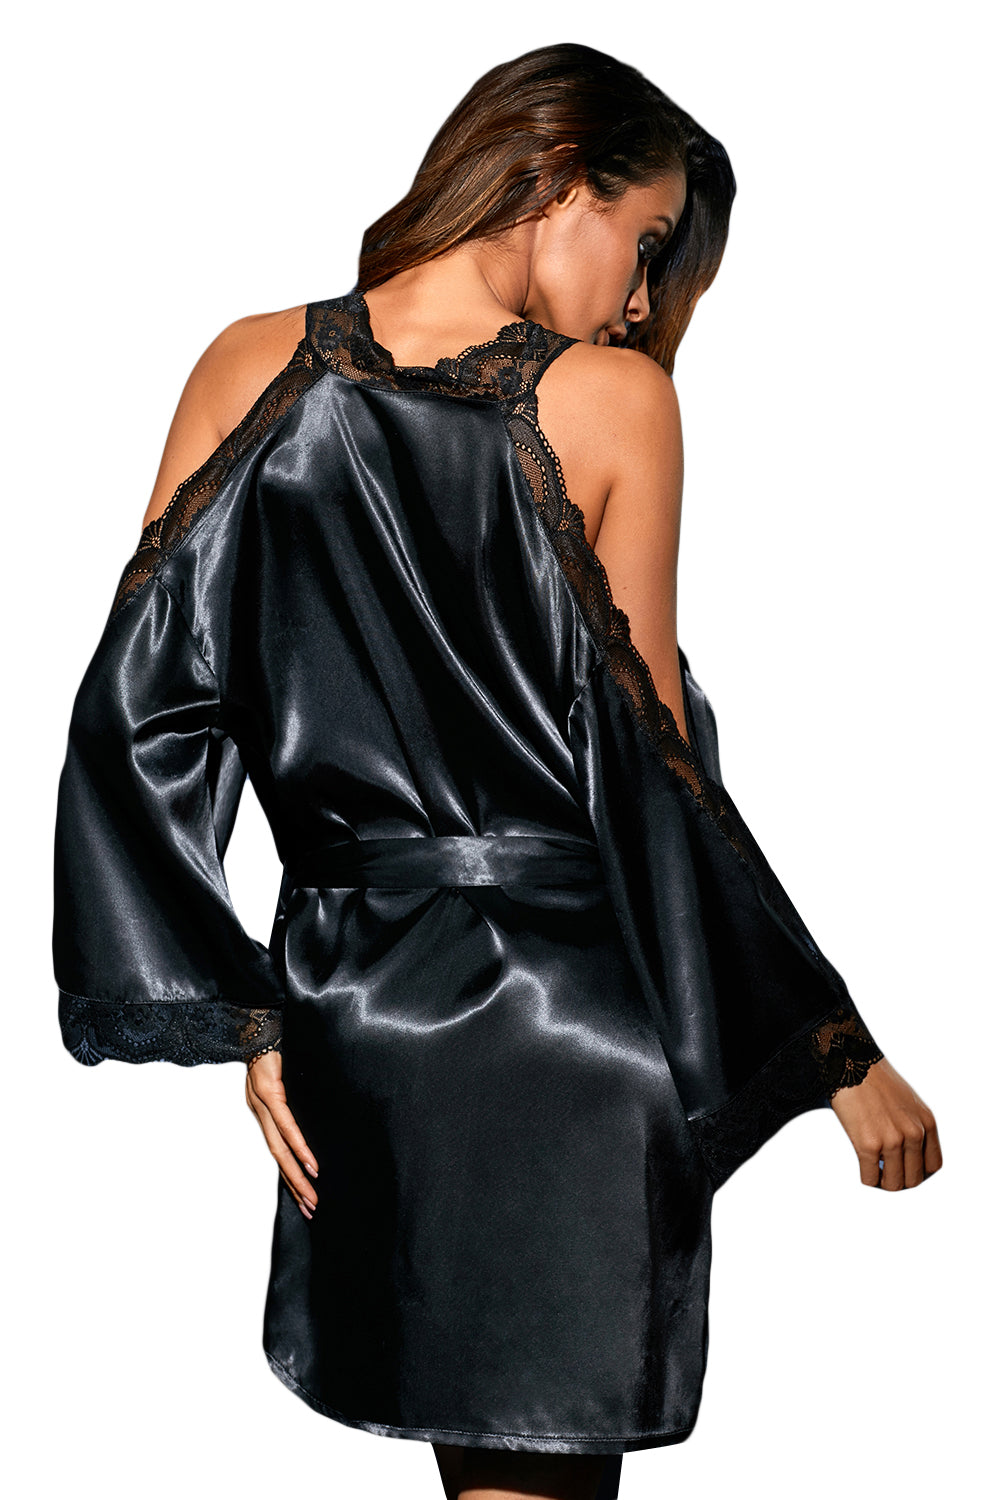 Her Fashion Black Sleek Lingerie Satin Lace Robe